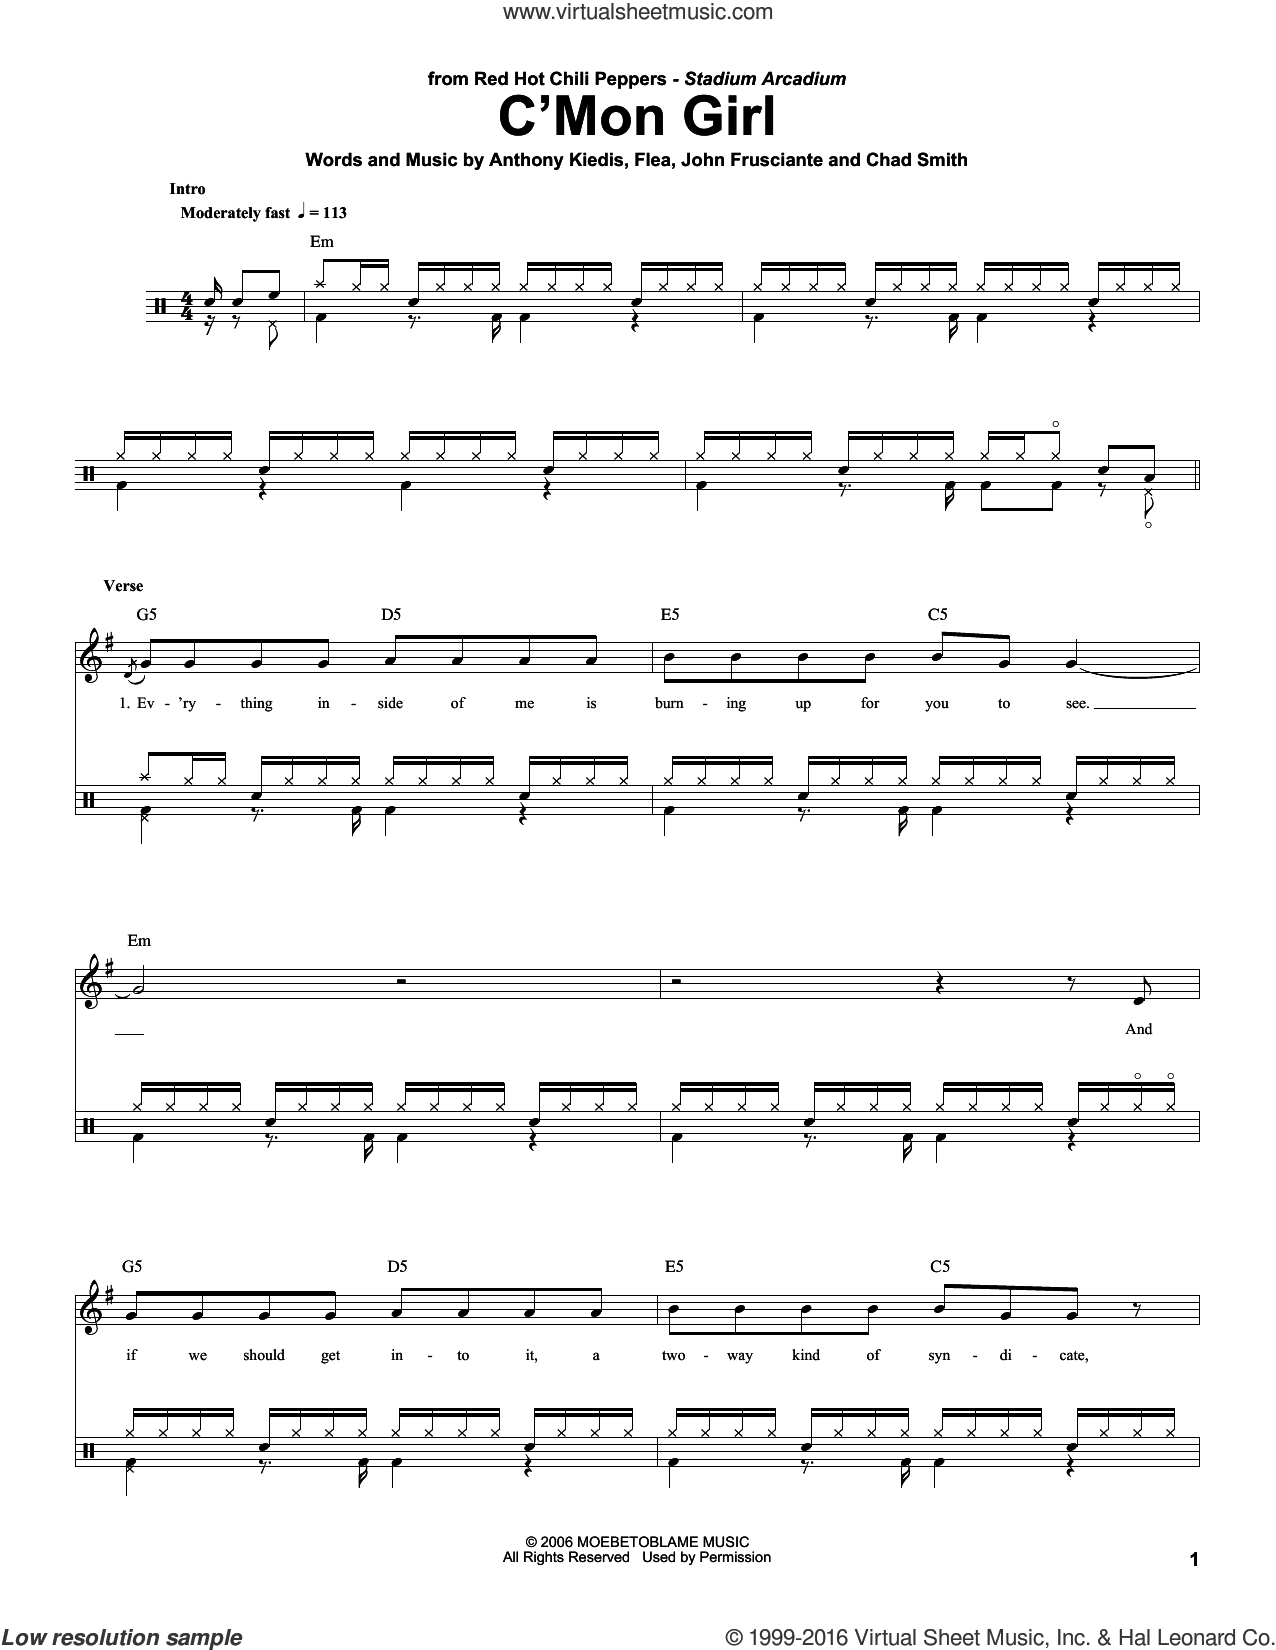 C'Mon Girl sheet music for drums by Red Hot Chili Peppers, Anthony Kiedis, Chad Smith, Flea and John Frusciante, intermediate skill level